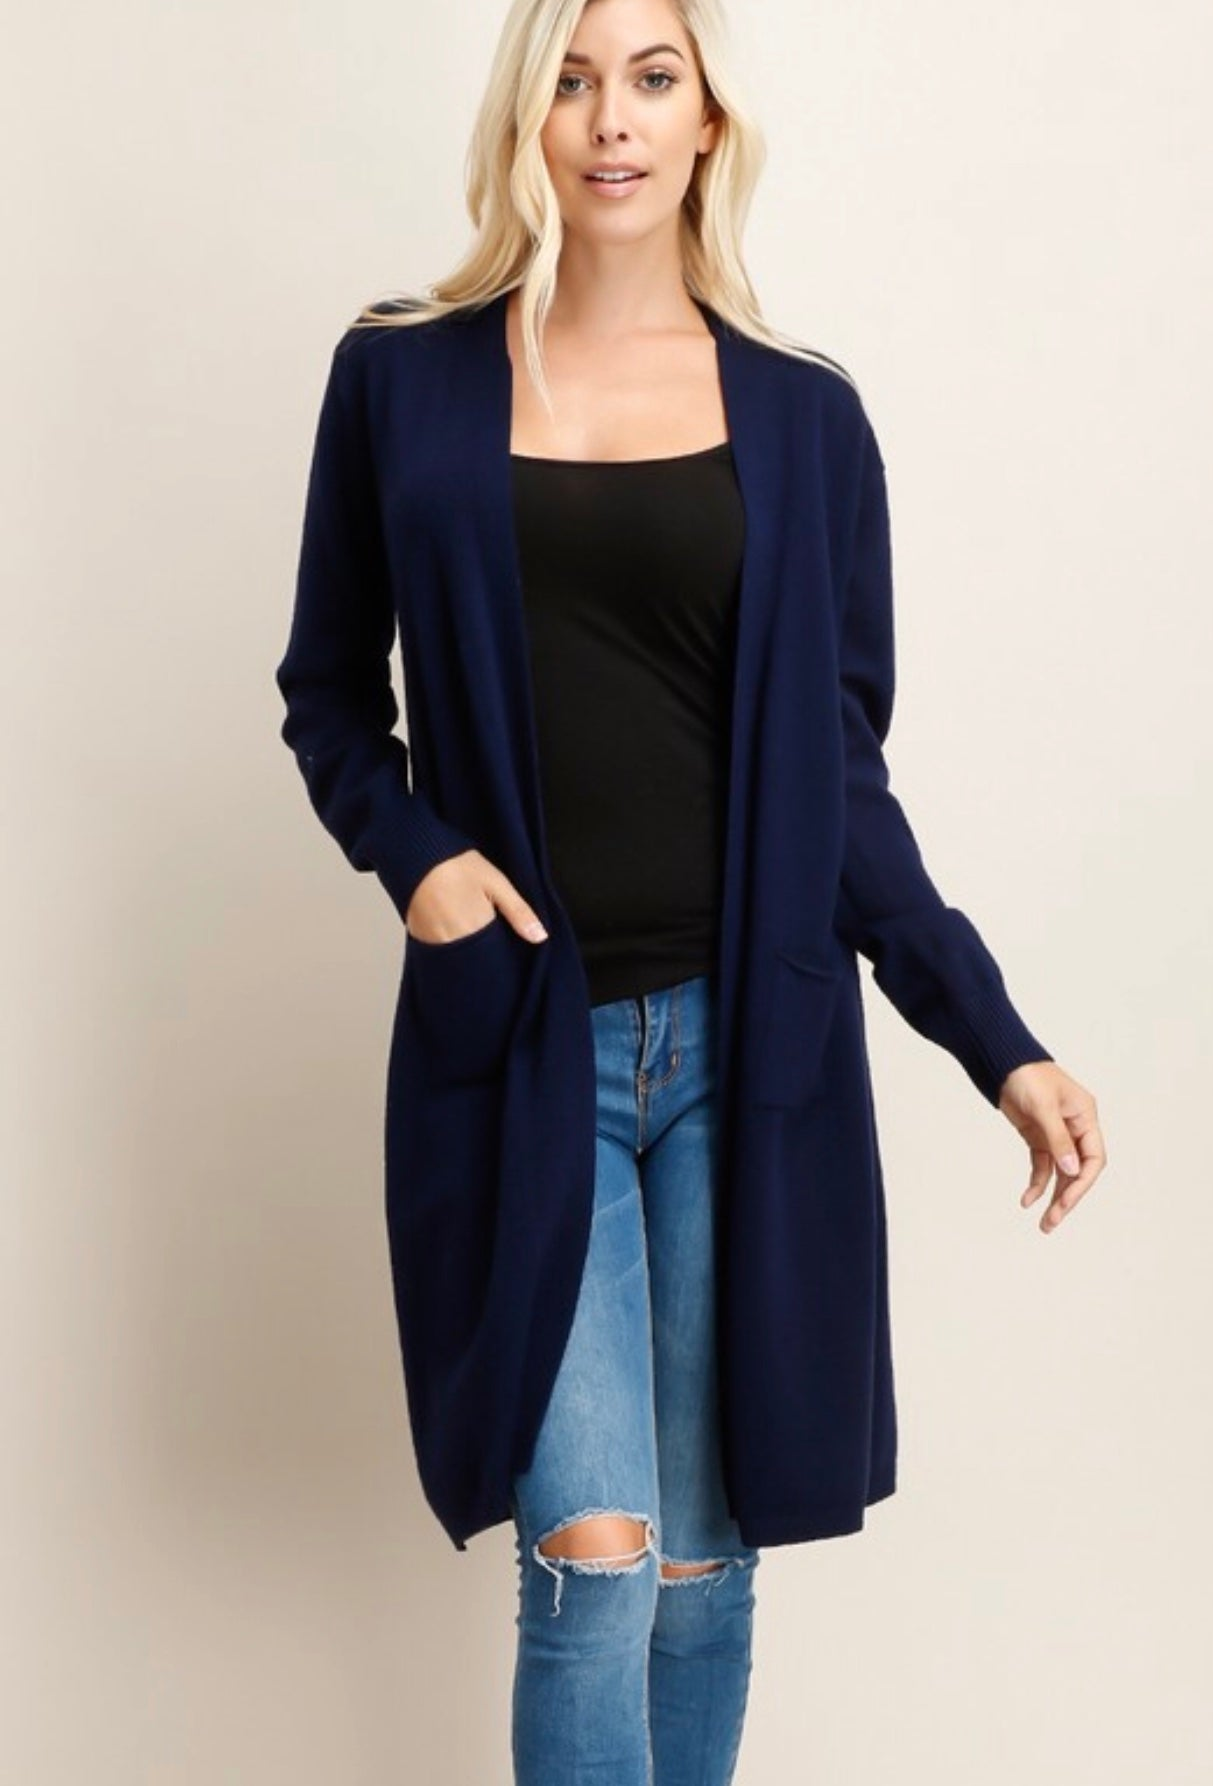 Stay Cozy Cardigan - Navy